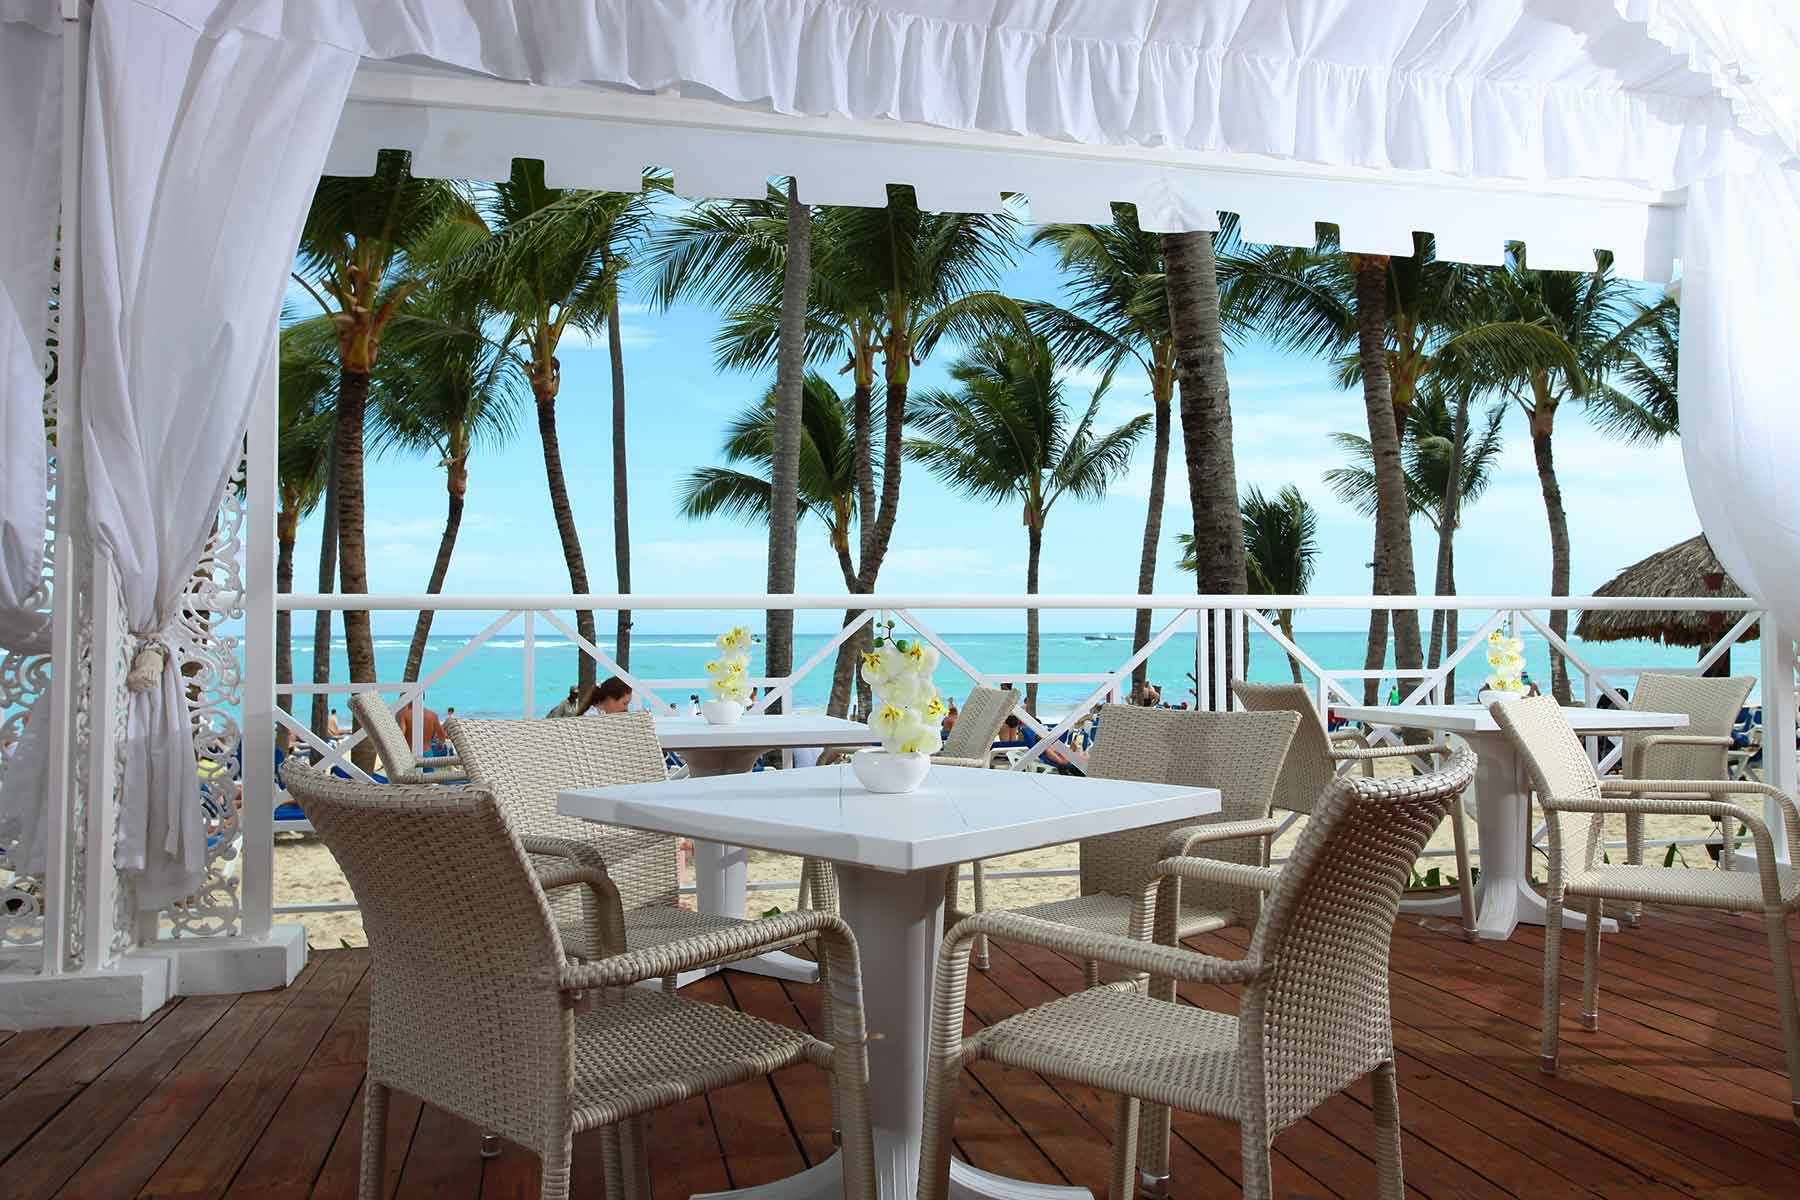 Grand Bahia Principe Bavaro Punta Cana Ambar Green Resort Restaurants Bars